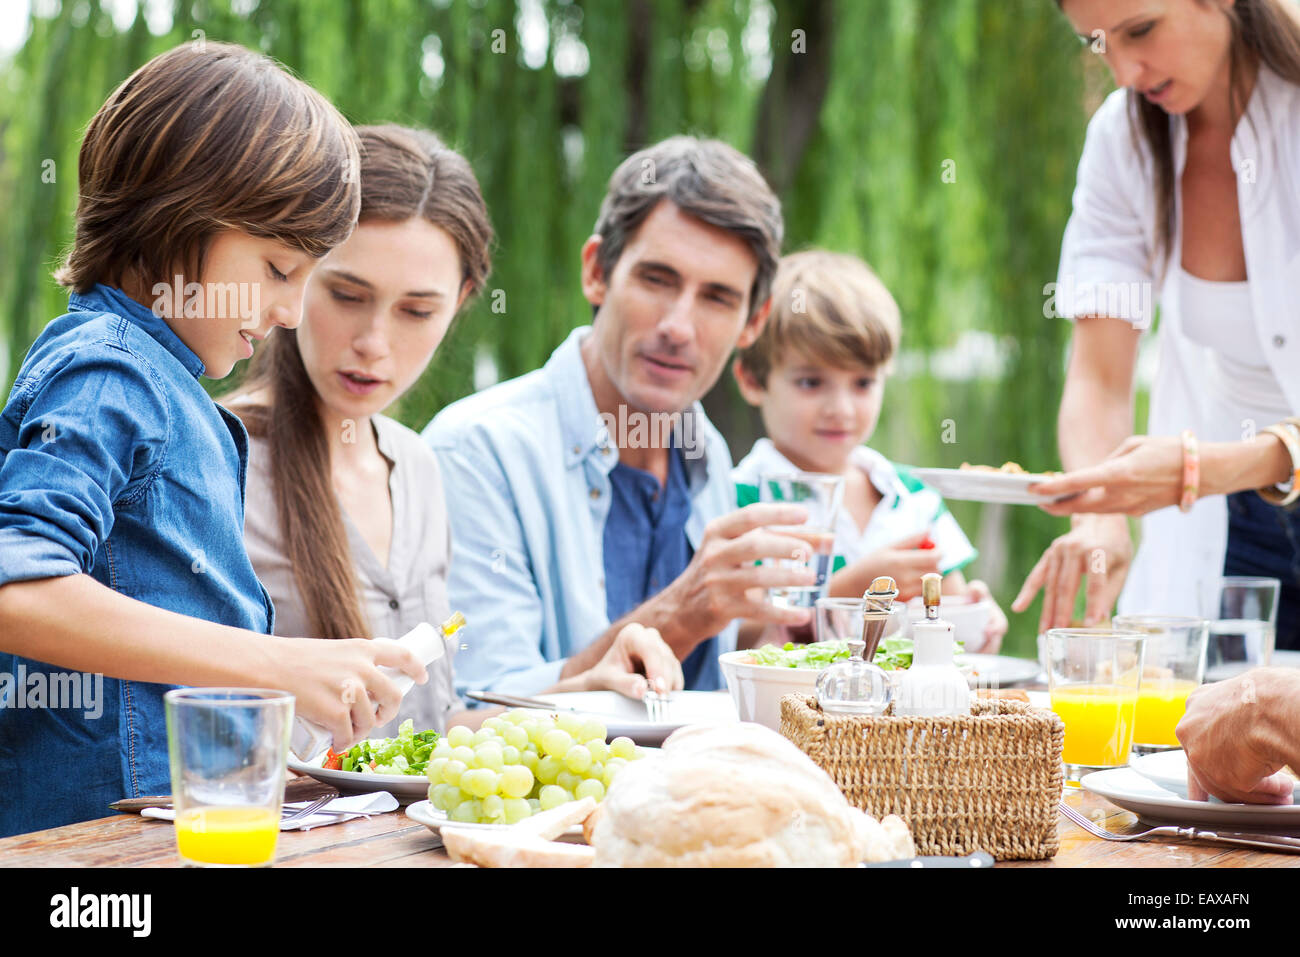 Family eating together at outdoor gathering - Stock Image